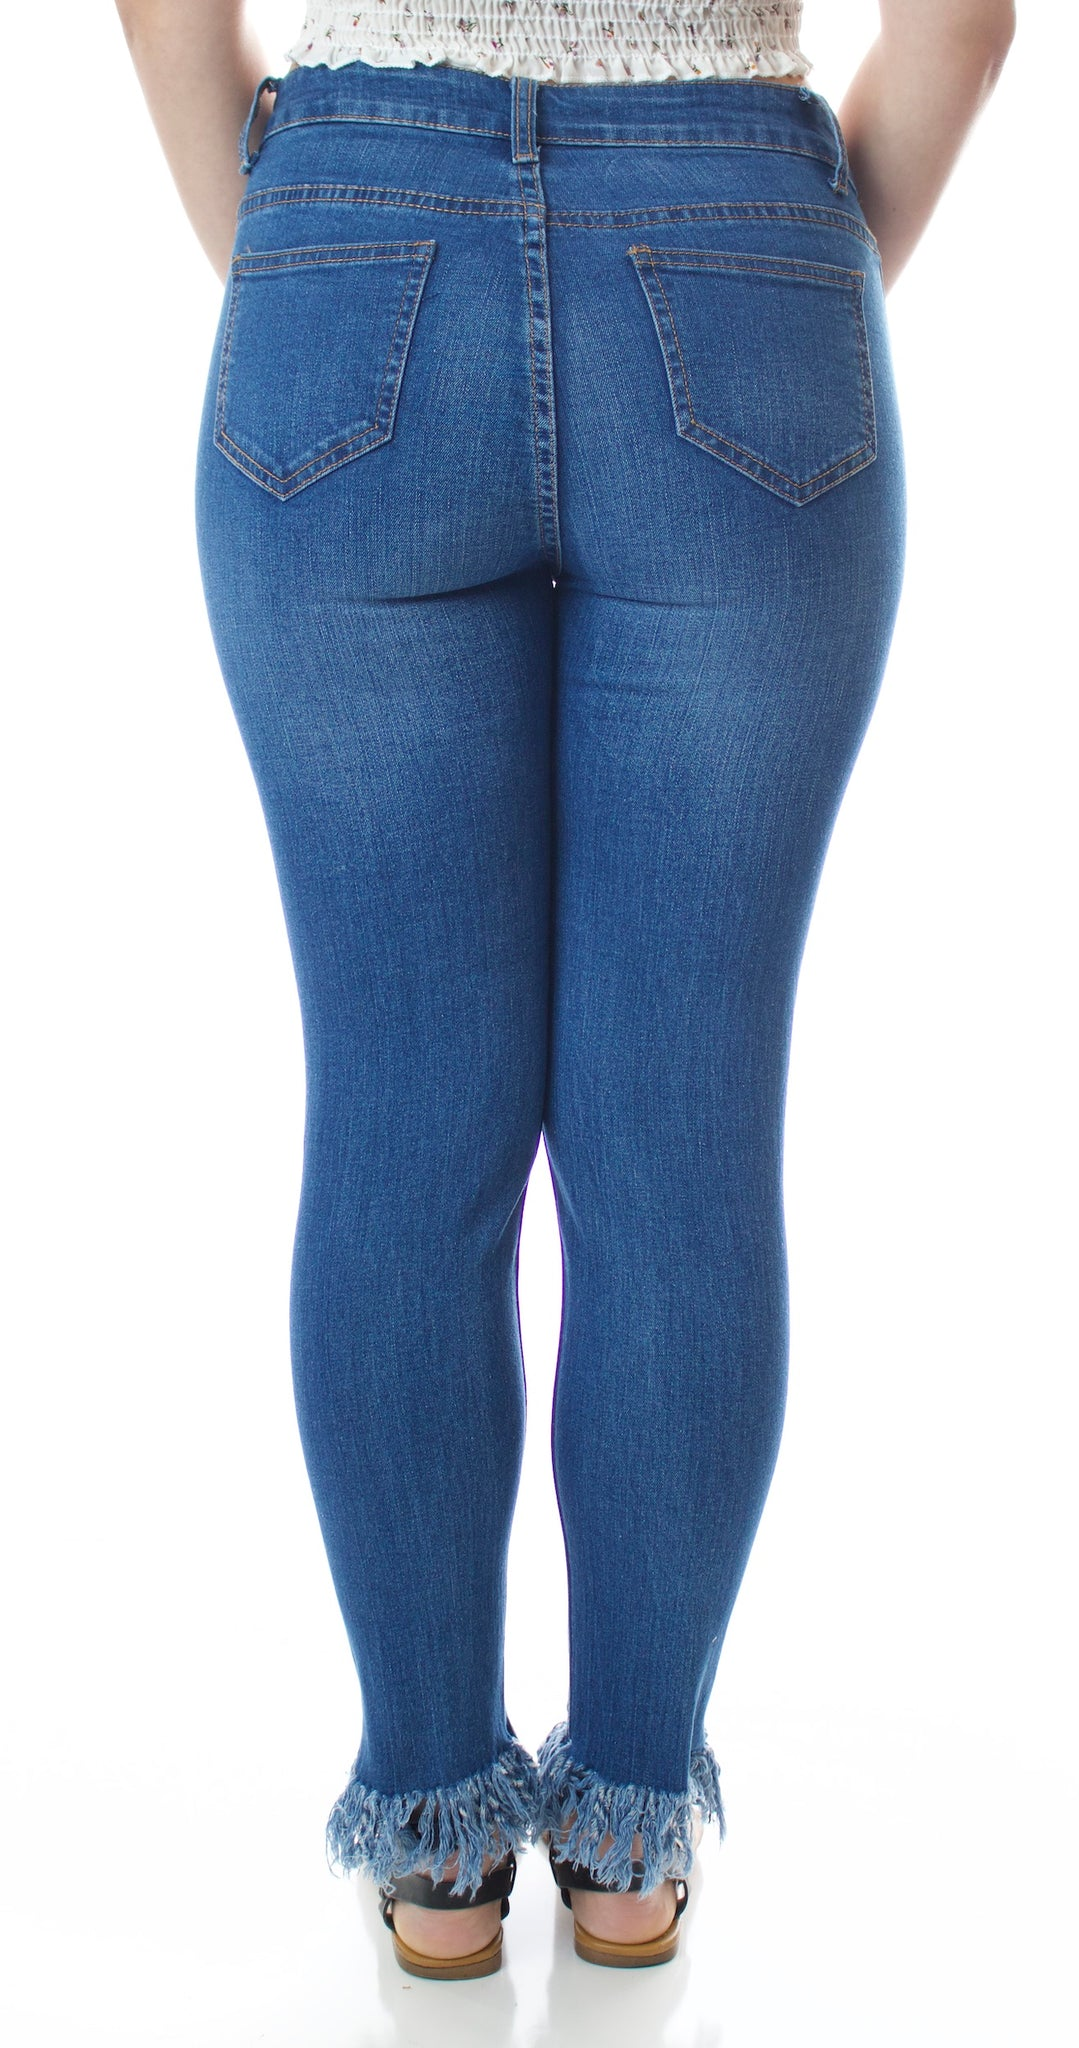 Kameron Denim Jeans